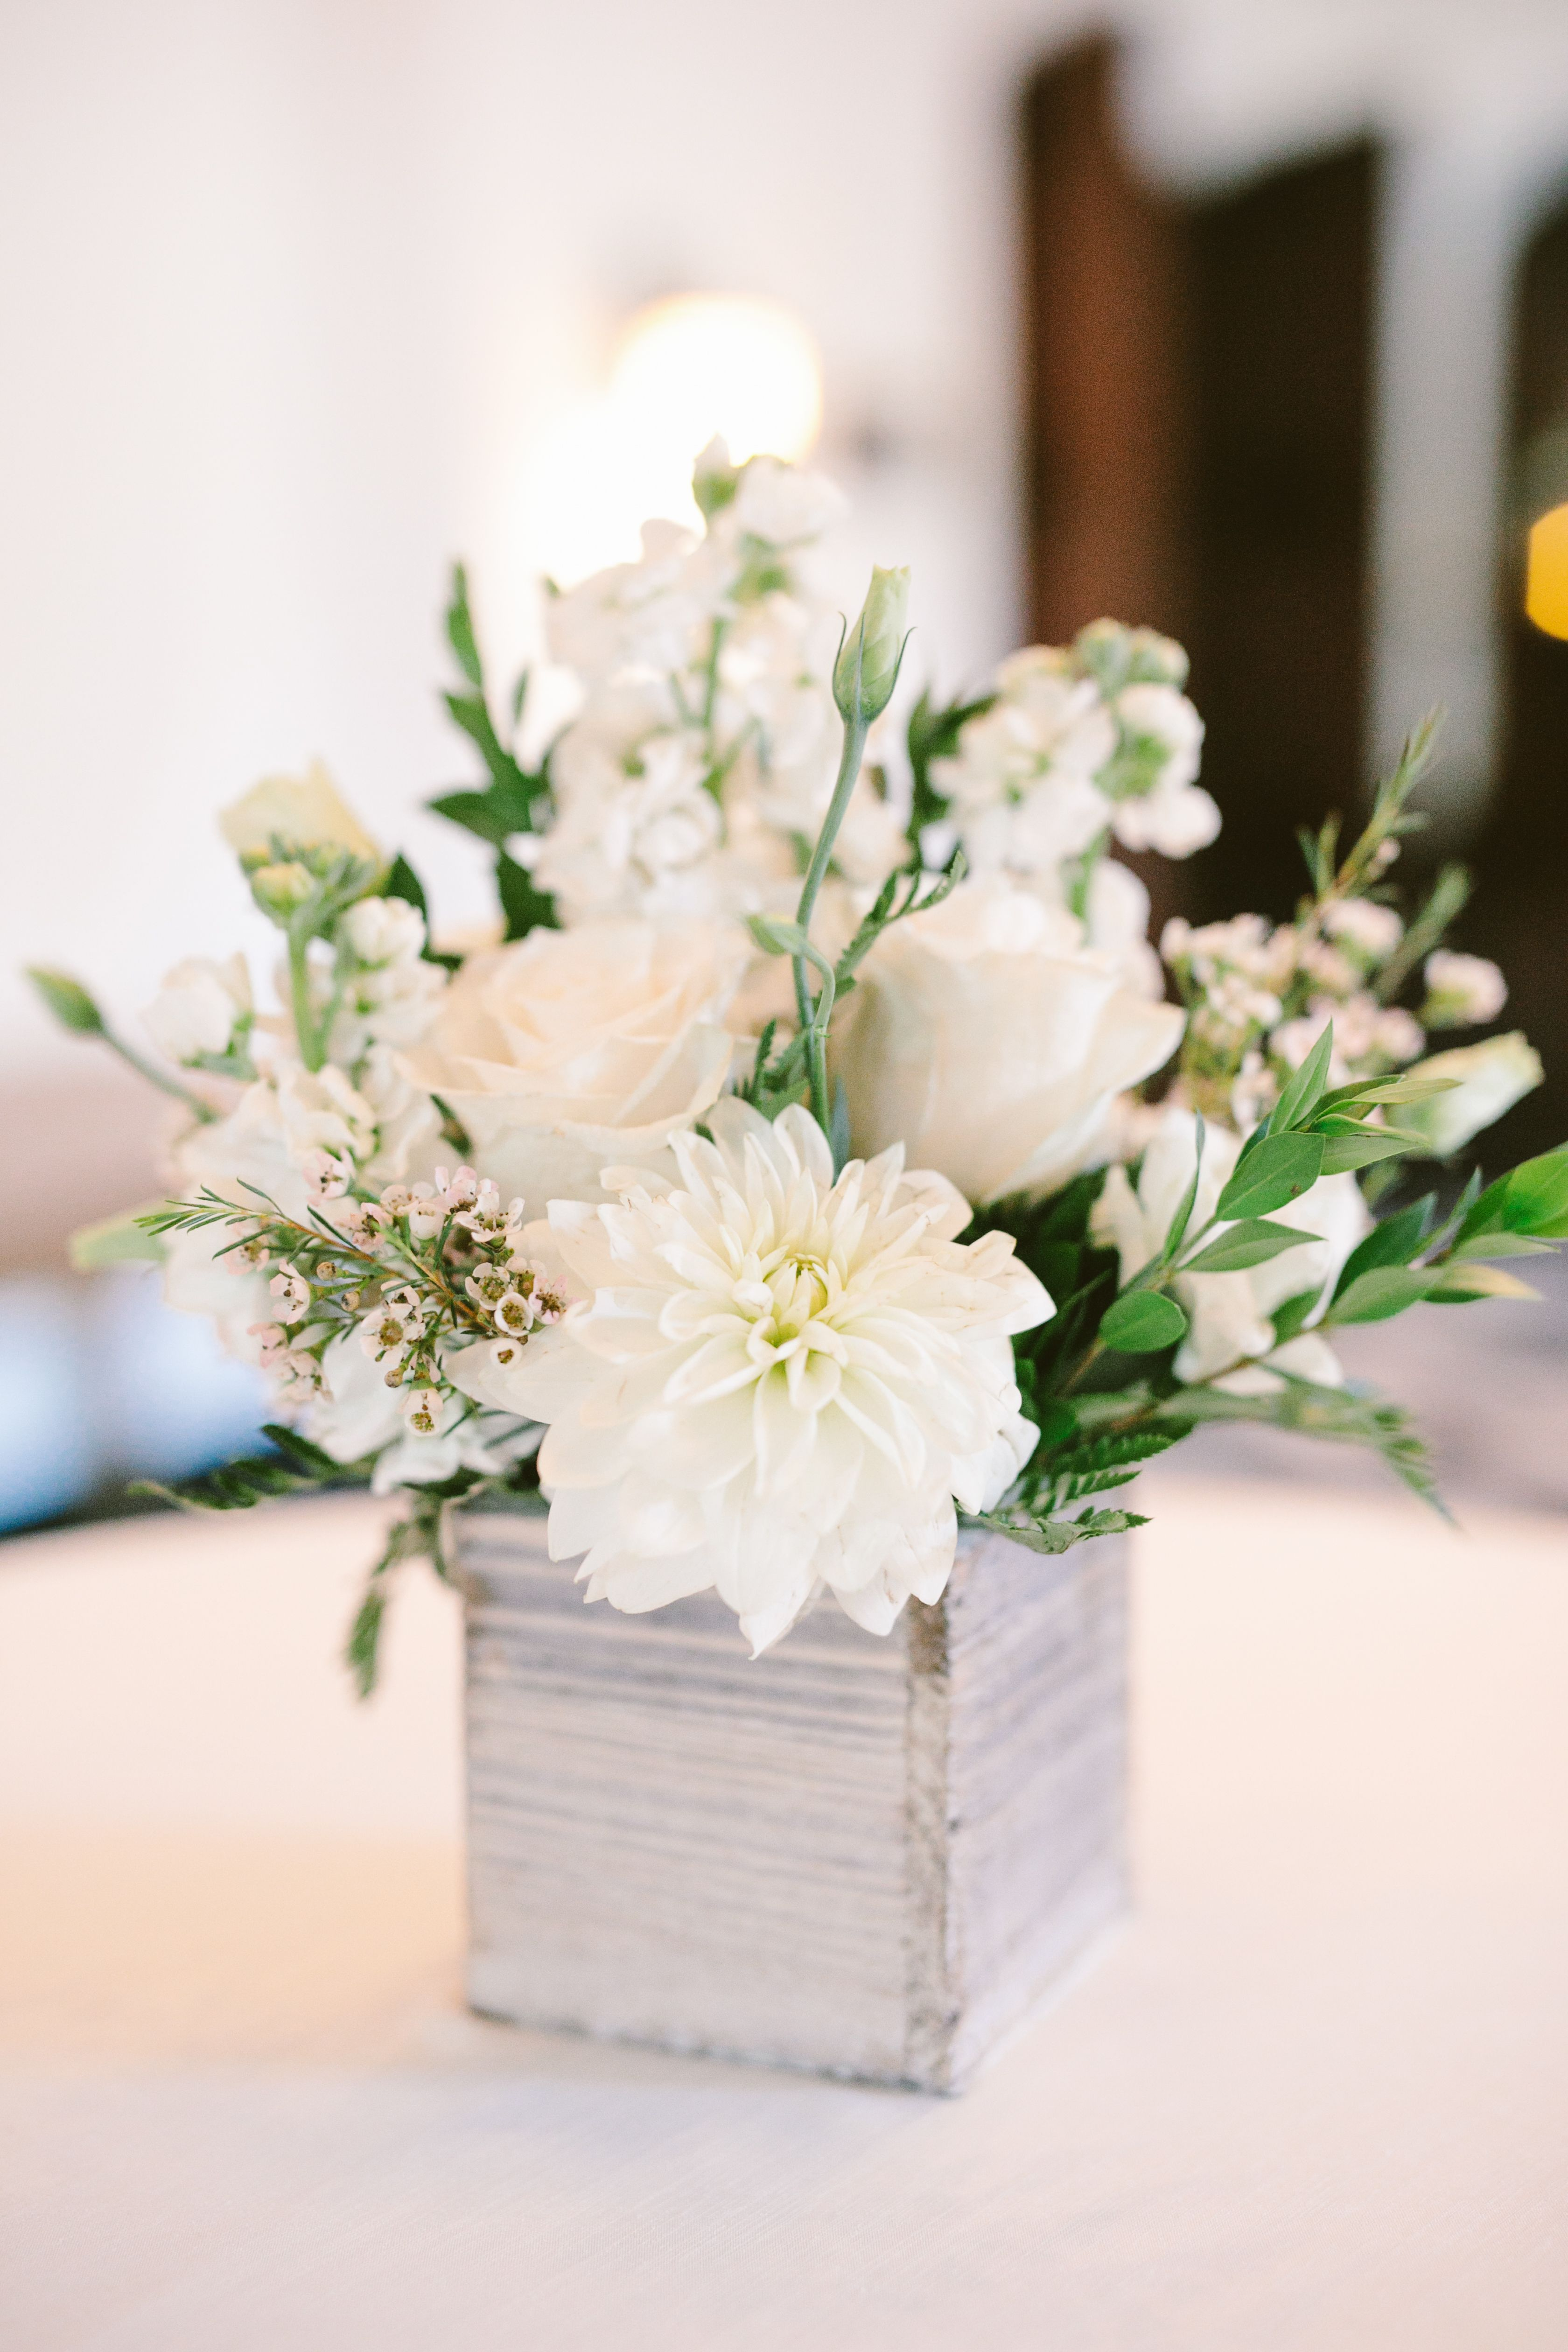 Floral Decor: 6 Tips To Keeping Your Centerpieces Chic